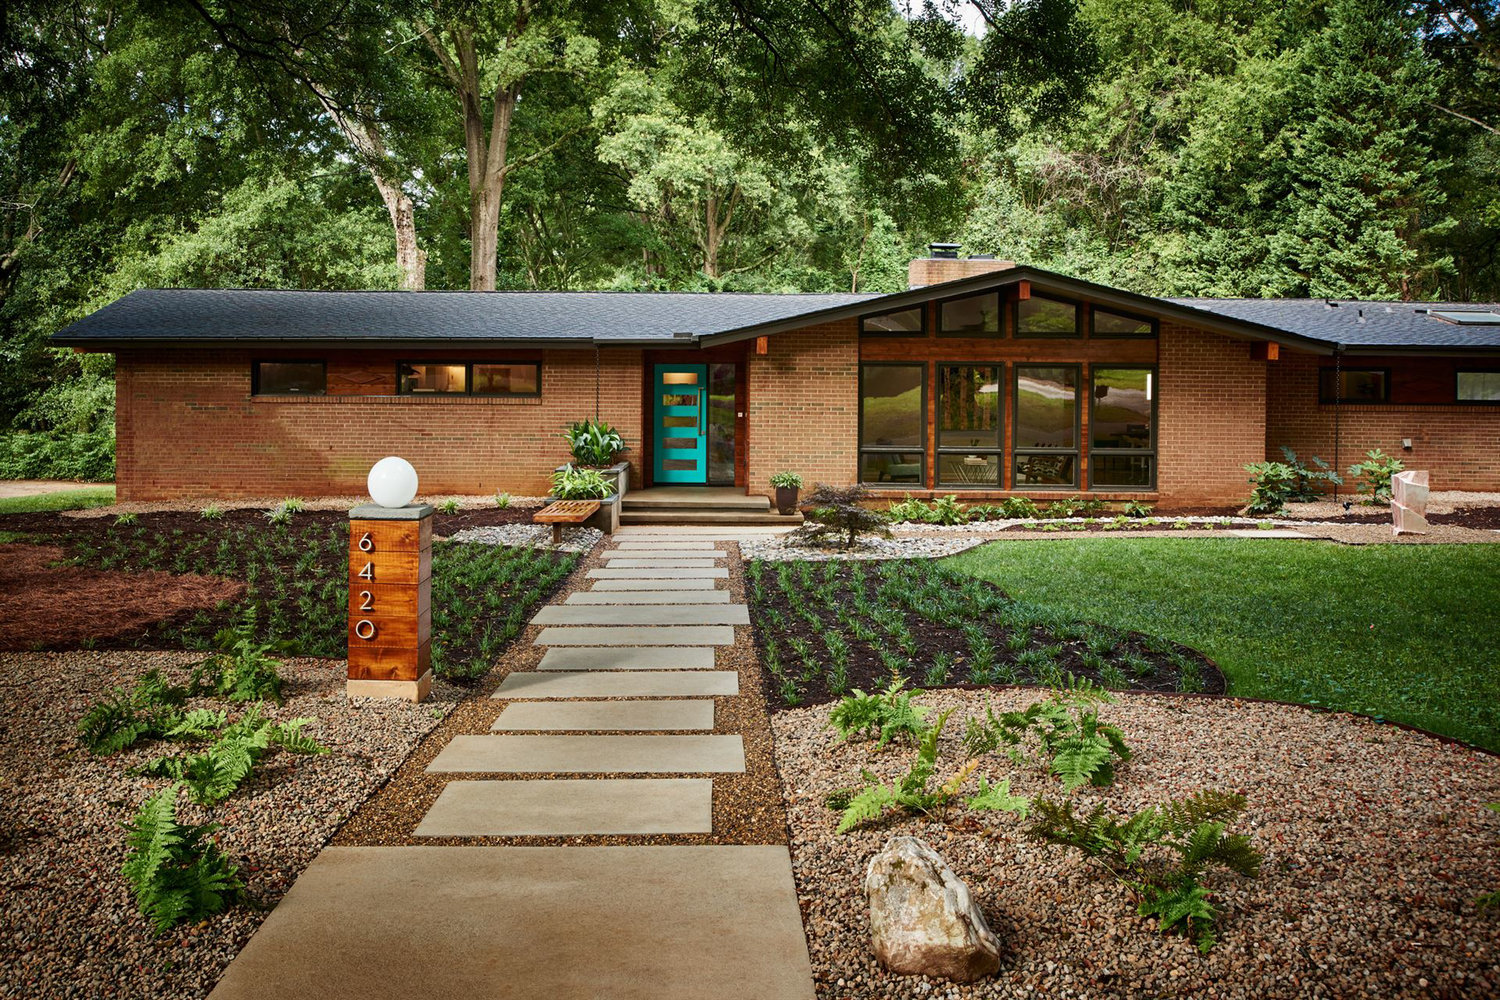 FEATURED LOCATION: Mid-Century Modern Ranch in North Carolina